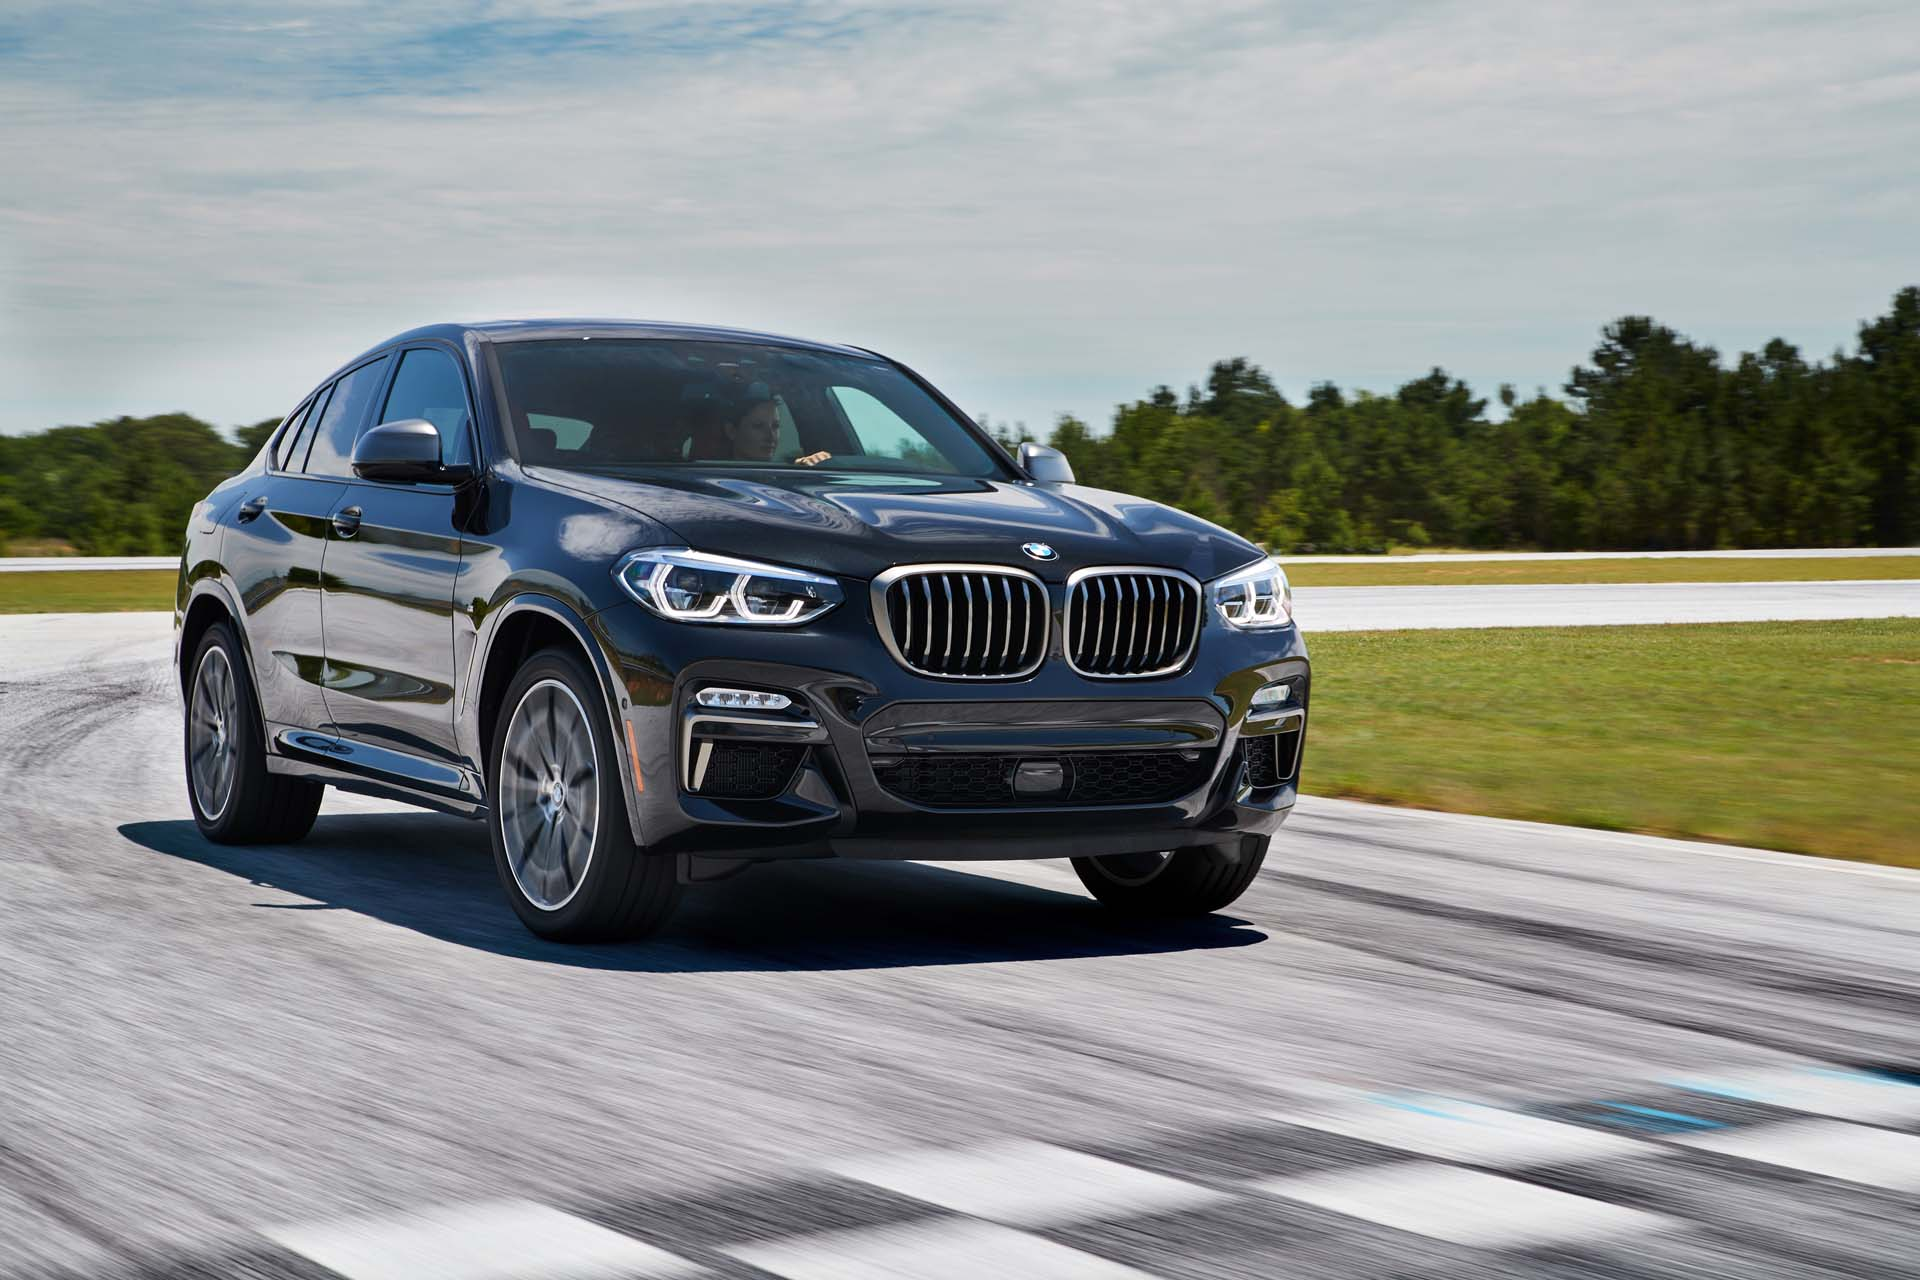 2019 bmw x4 first drive, tesla model 3 production, hyundai flirting